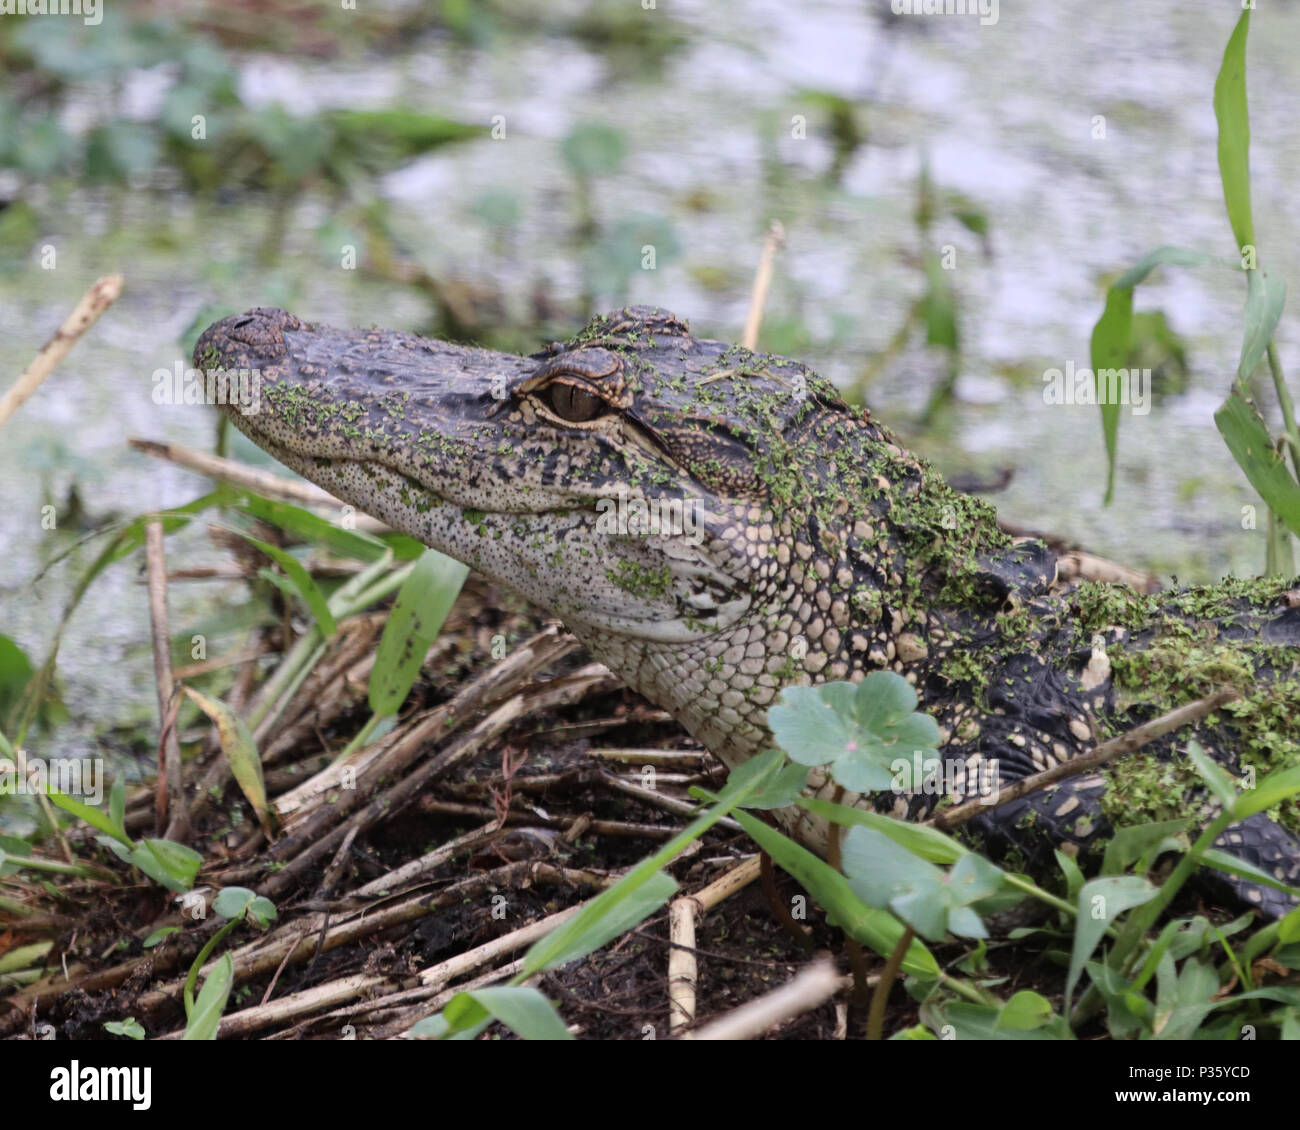 Calm Alligator surveying the swampy waters - Stock Image